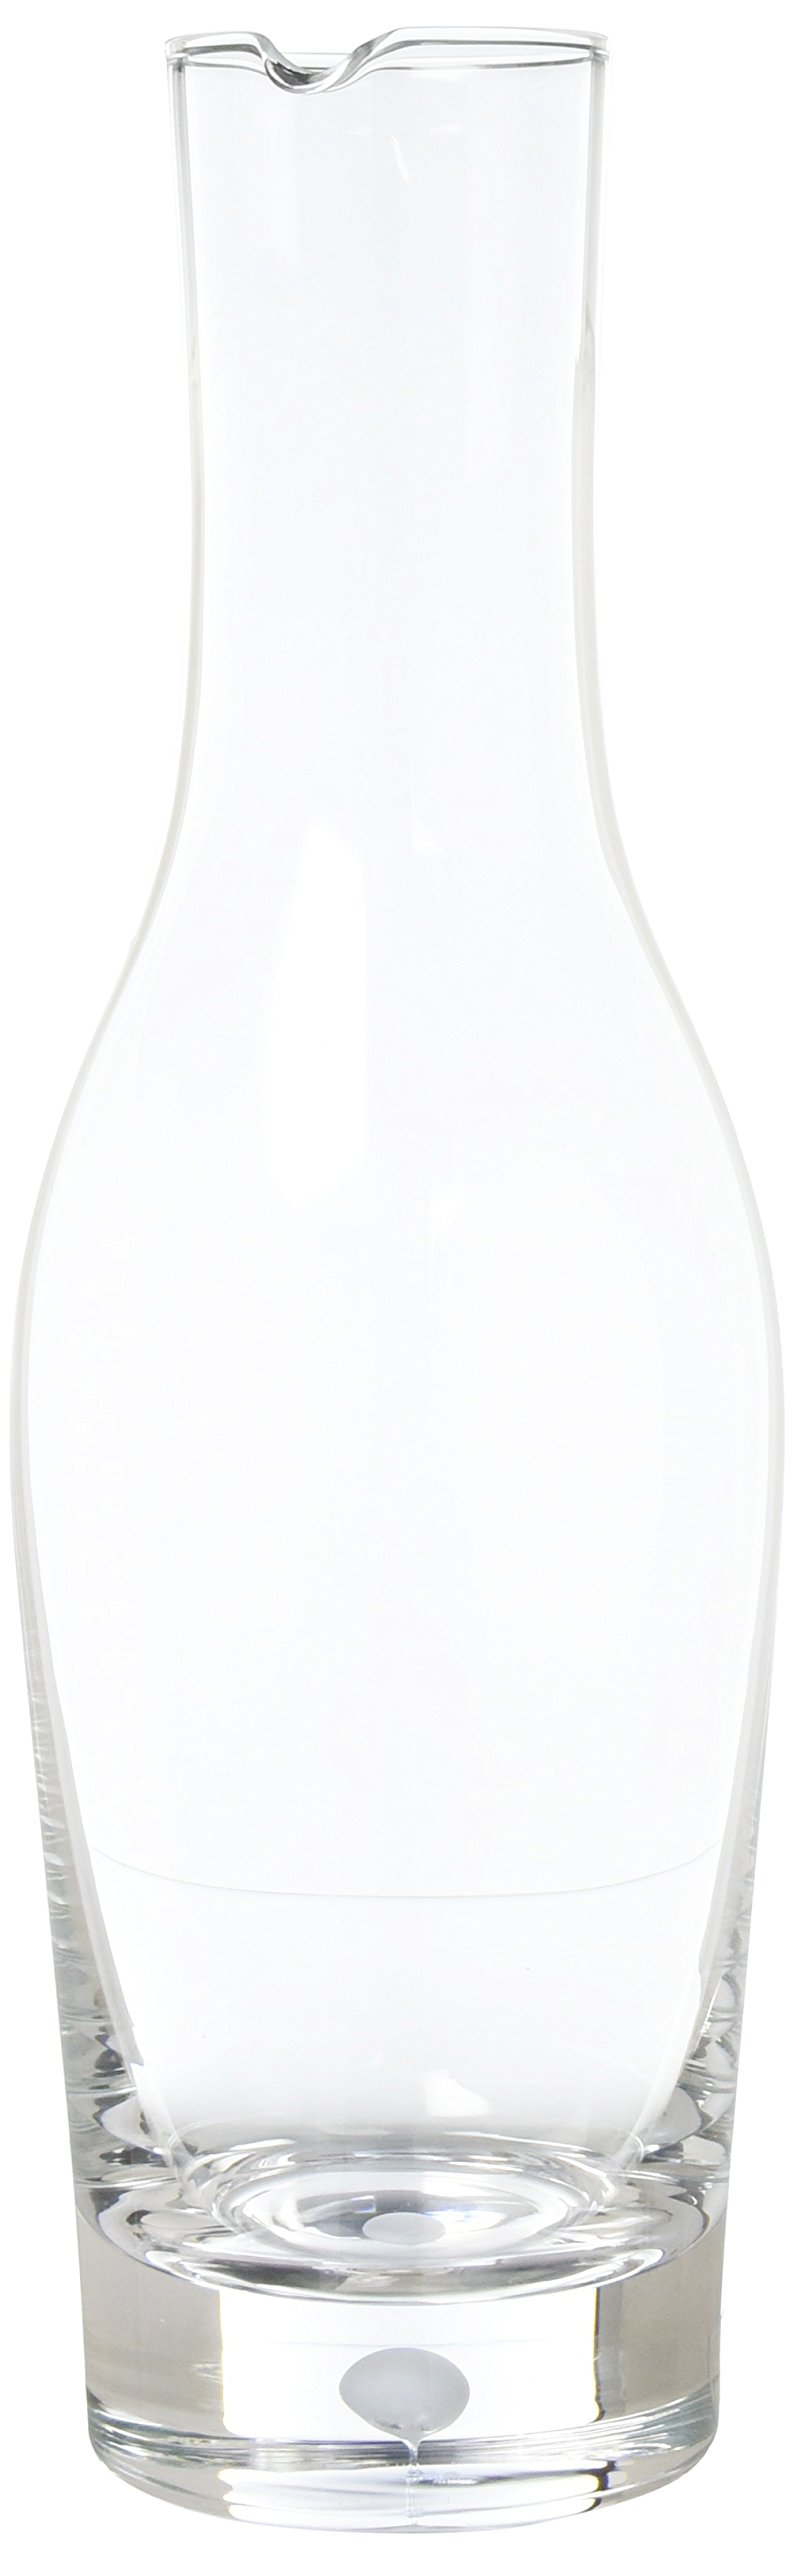 Orrefors Intermezzo Satin 37.3 Ounce Decanter